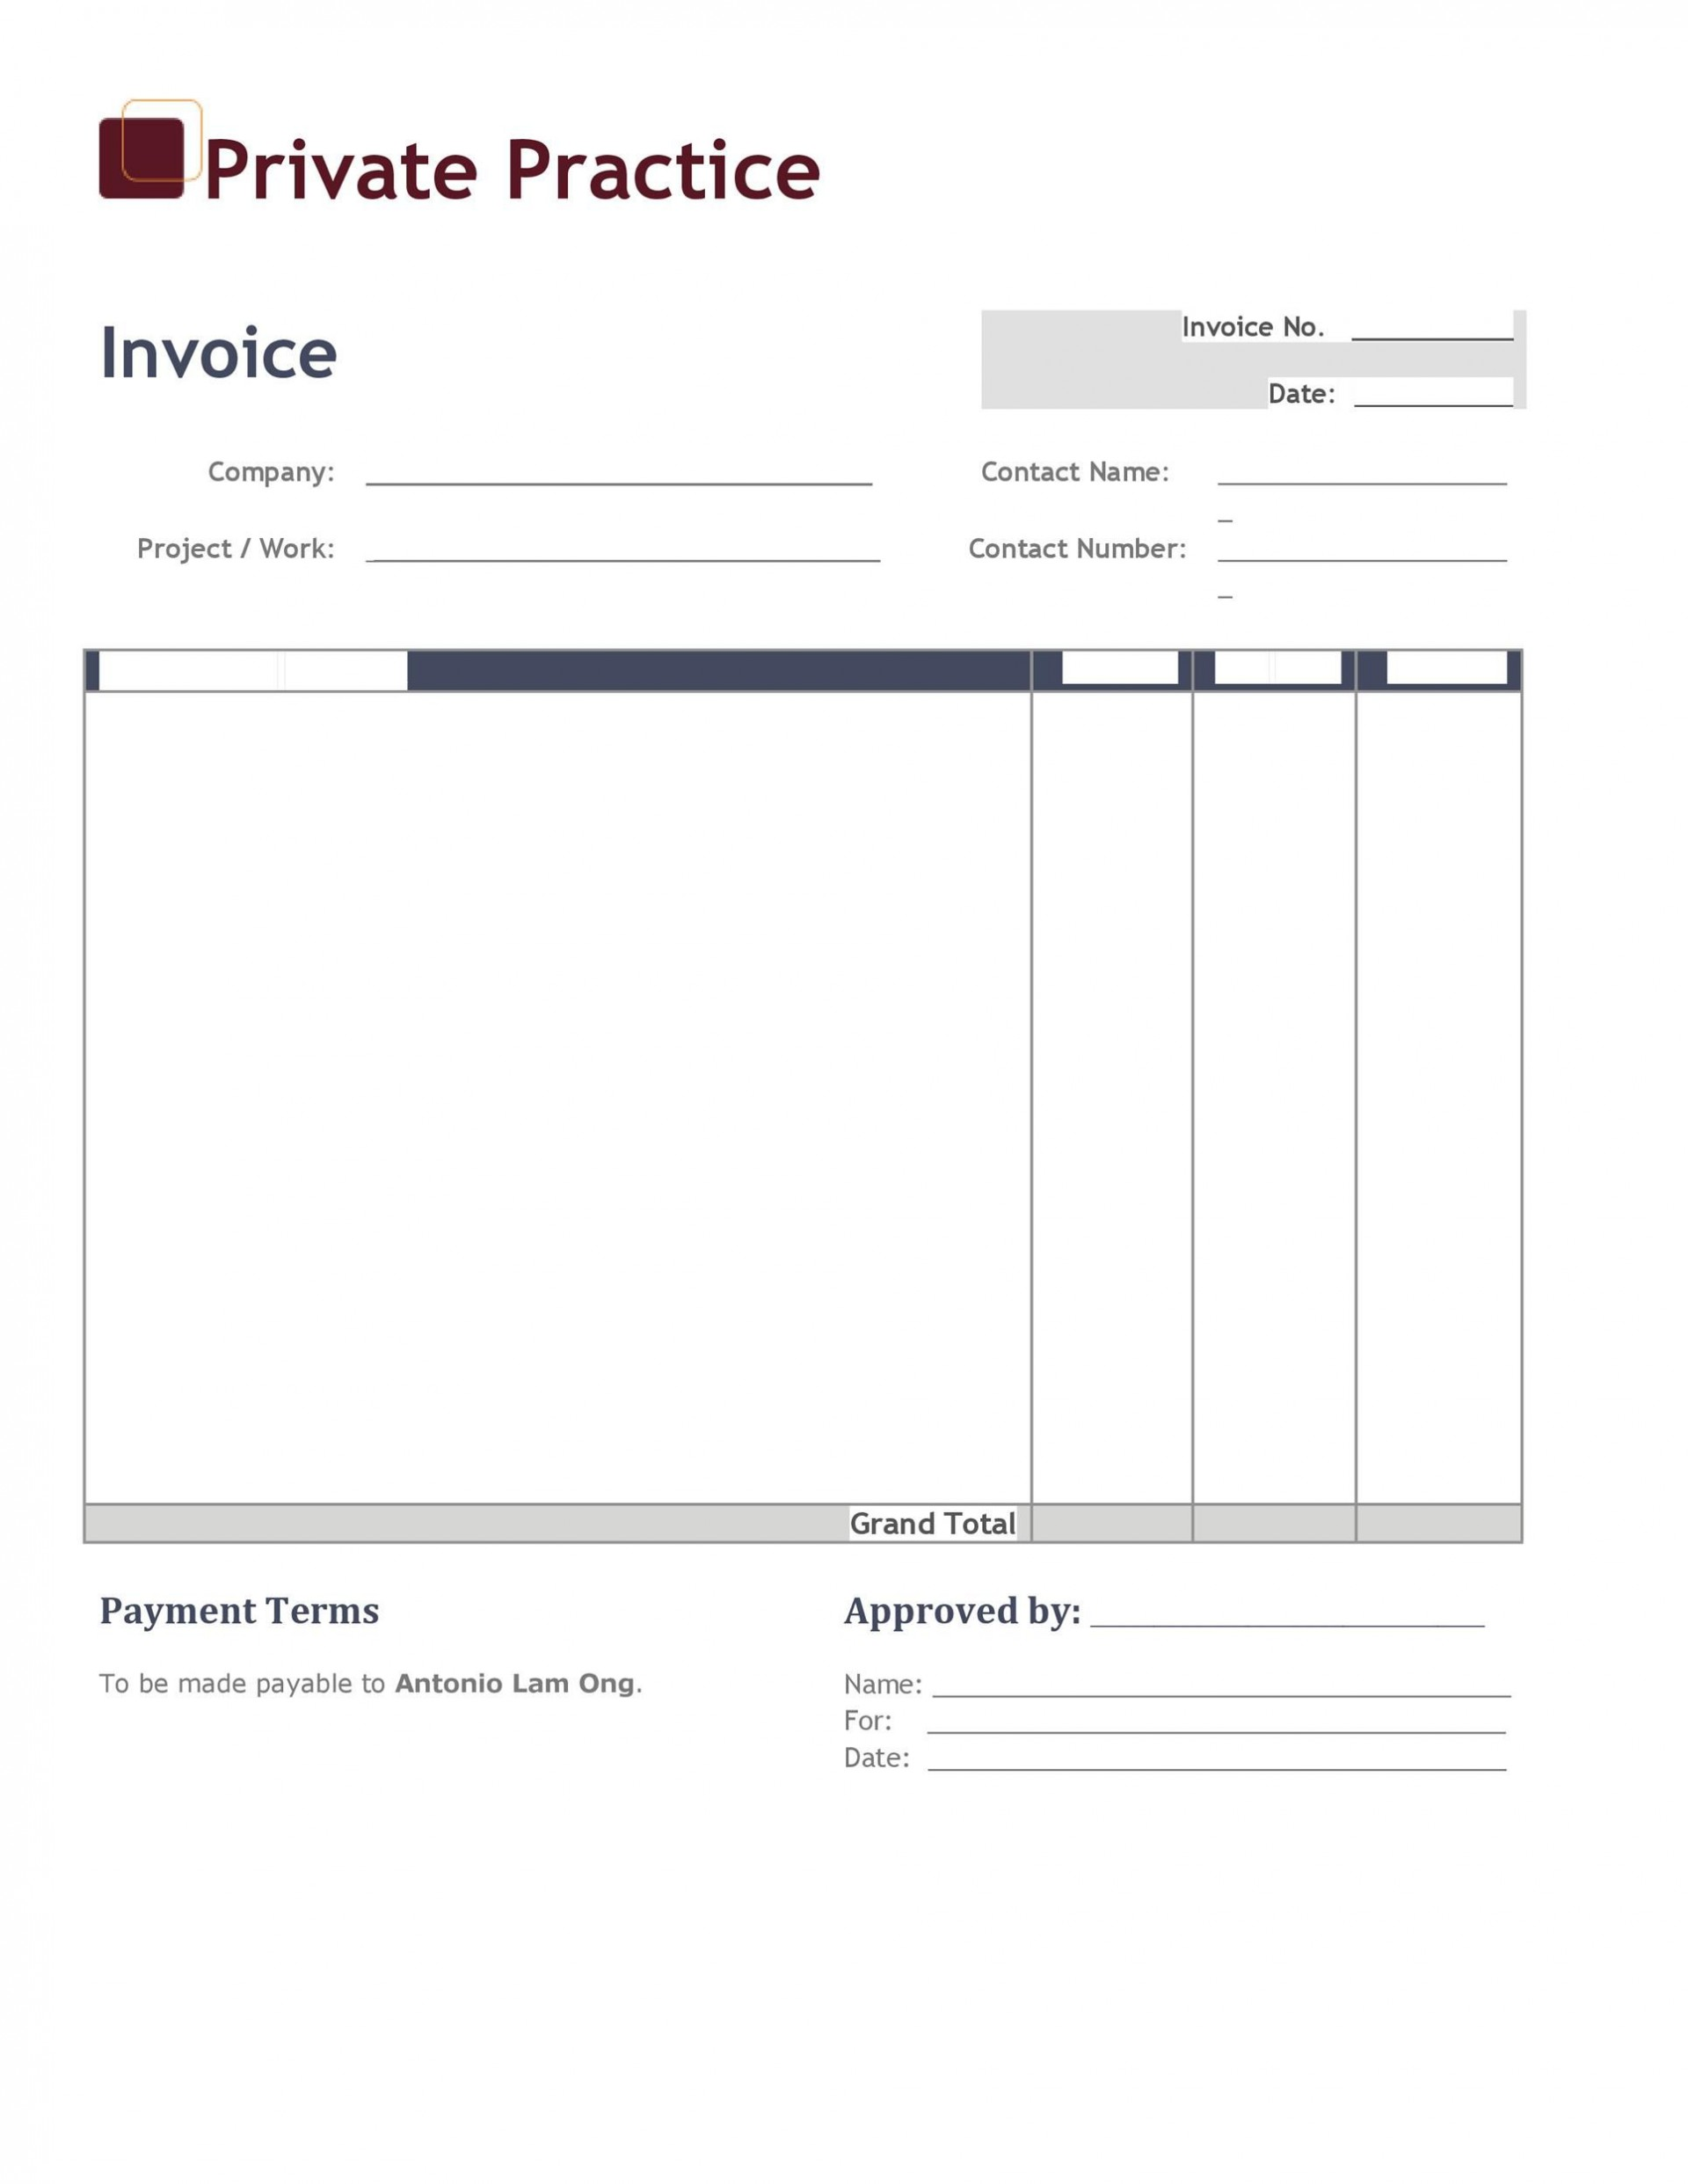 005 Phenomenal Invoice Template Free Word Concept  Sample Microsoft Simple1920